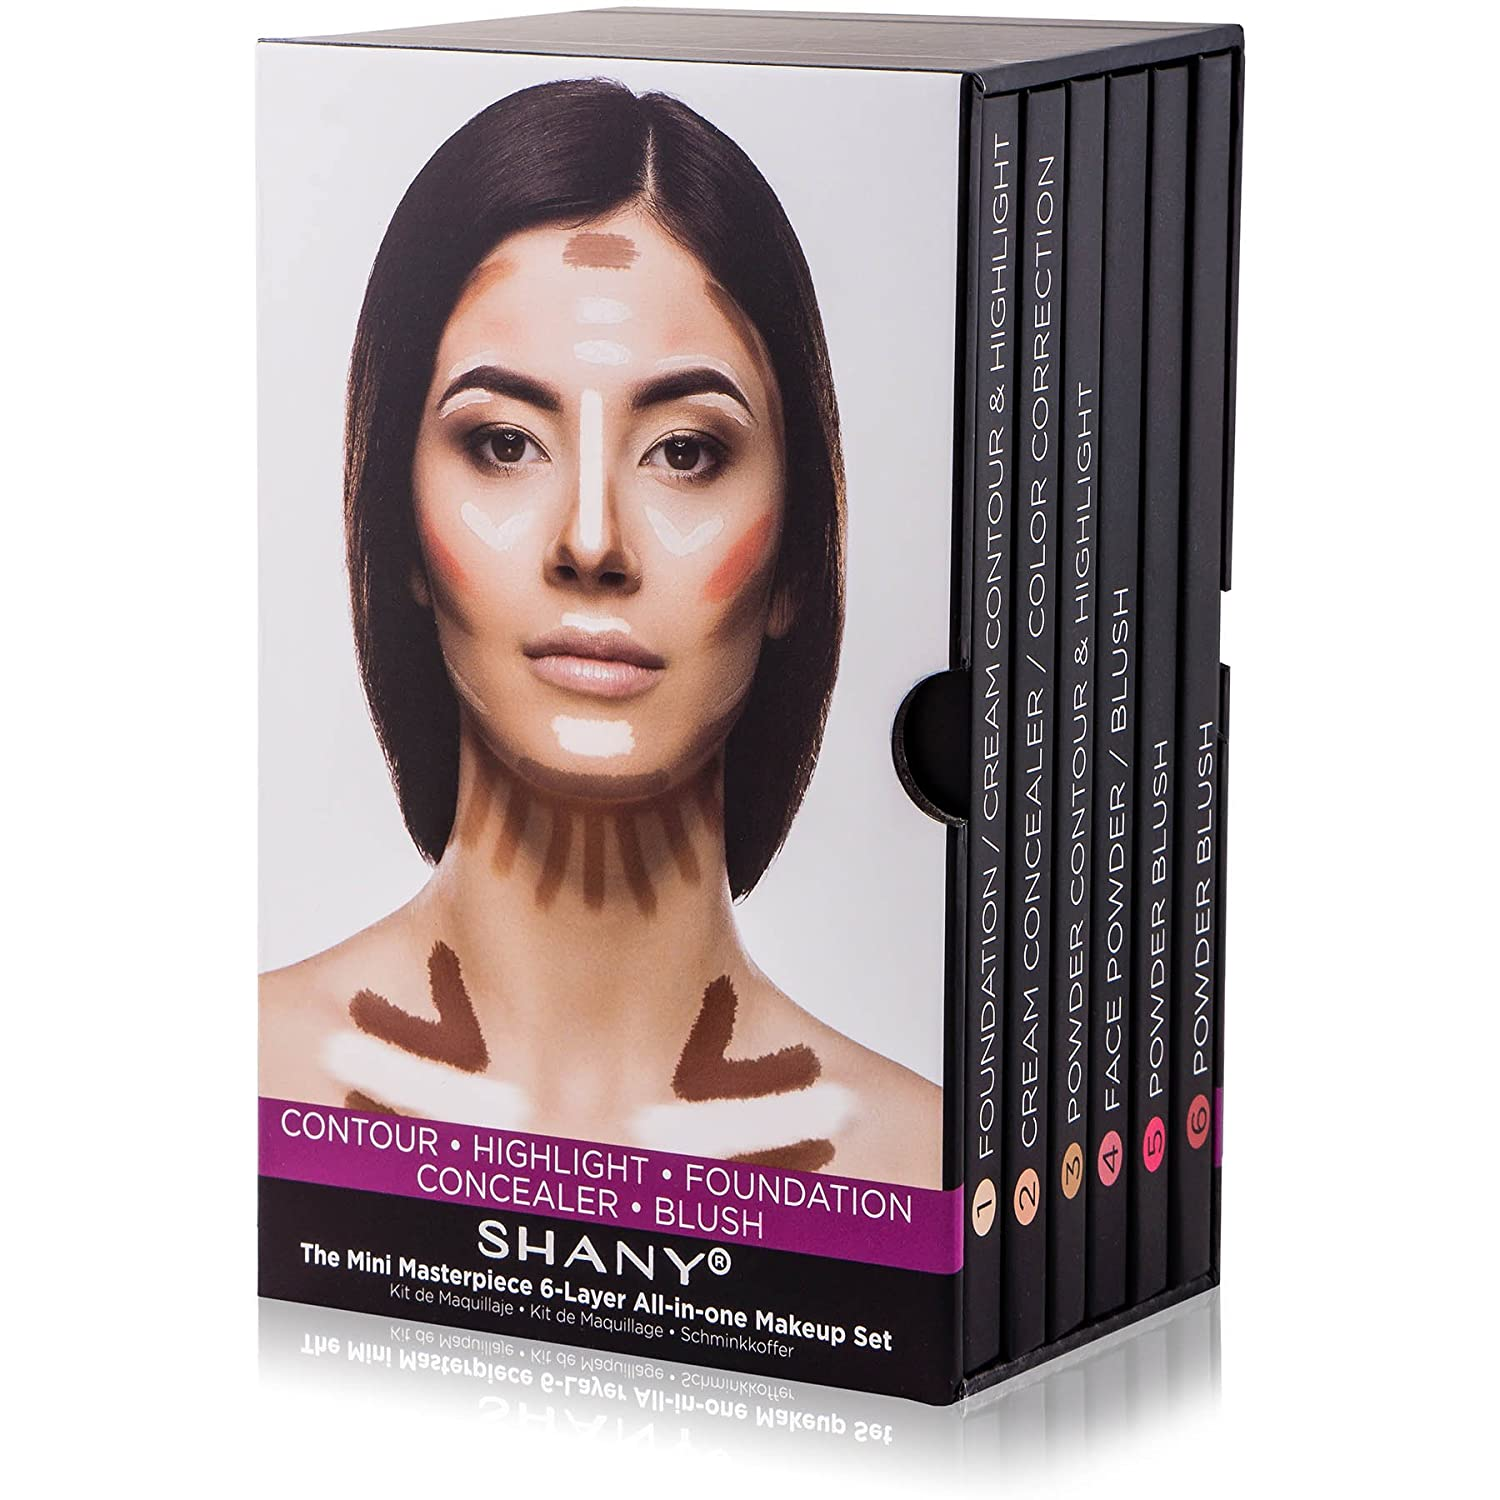 SHANY The Mini Masterpiece 6 Layers Foundation, Concealer, Camouflage, Contour, Blush Palette ETRAVIS Inc CA